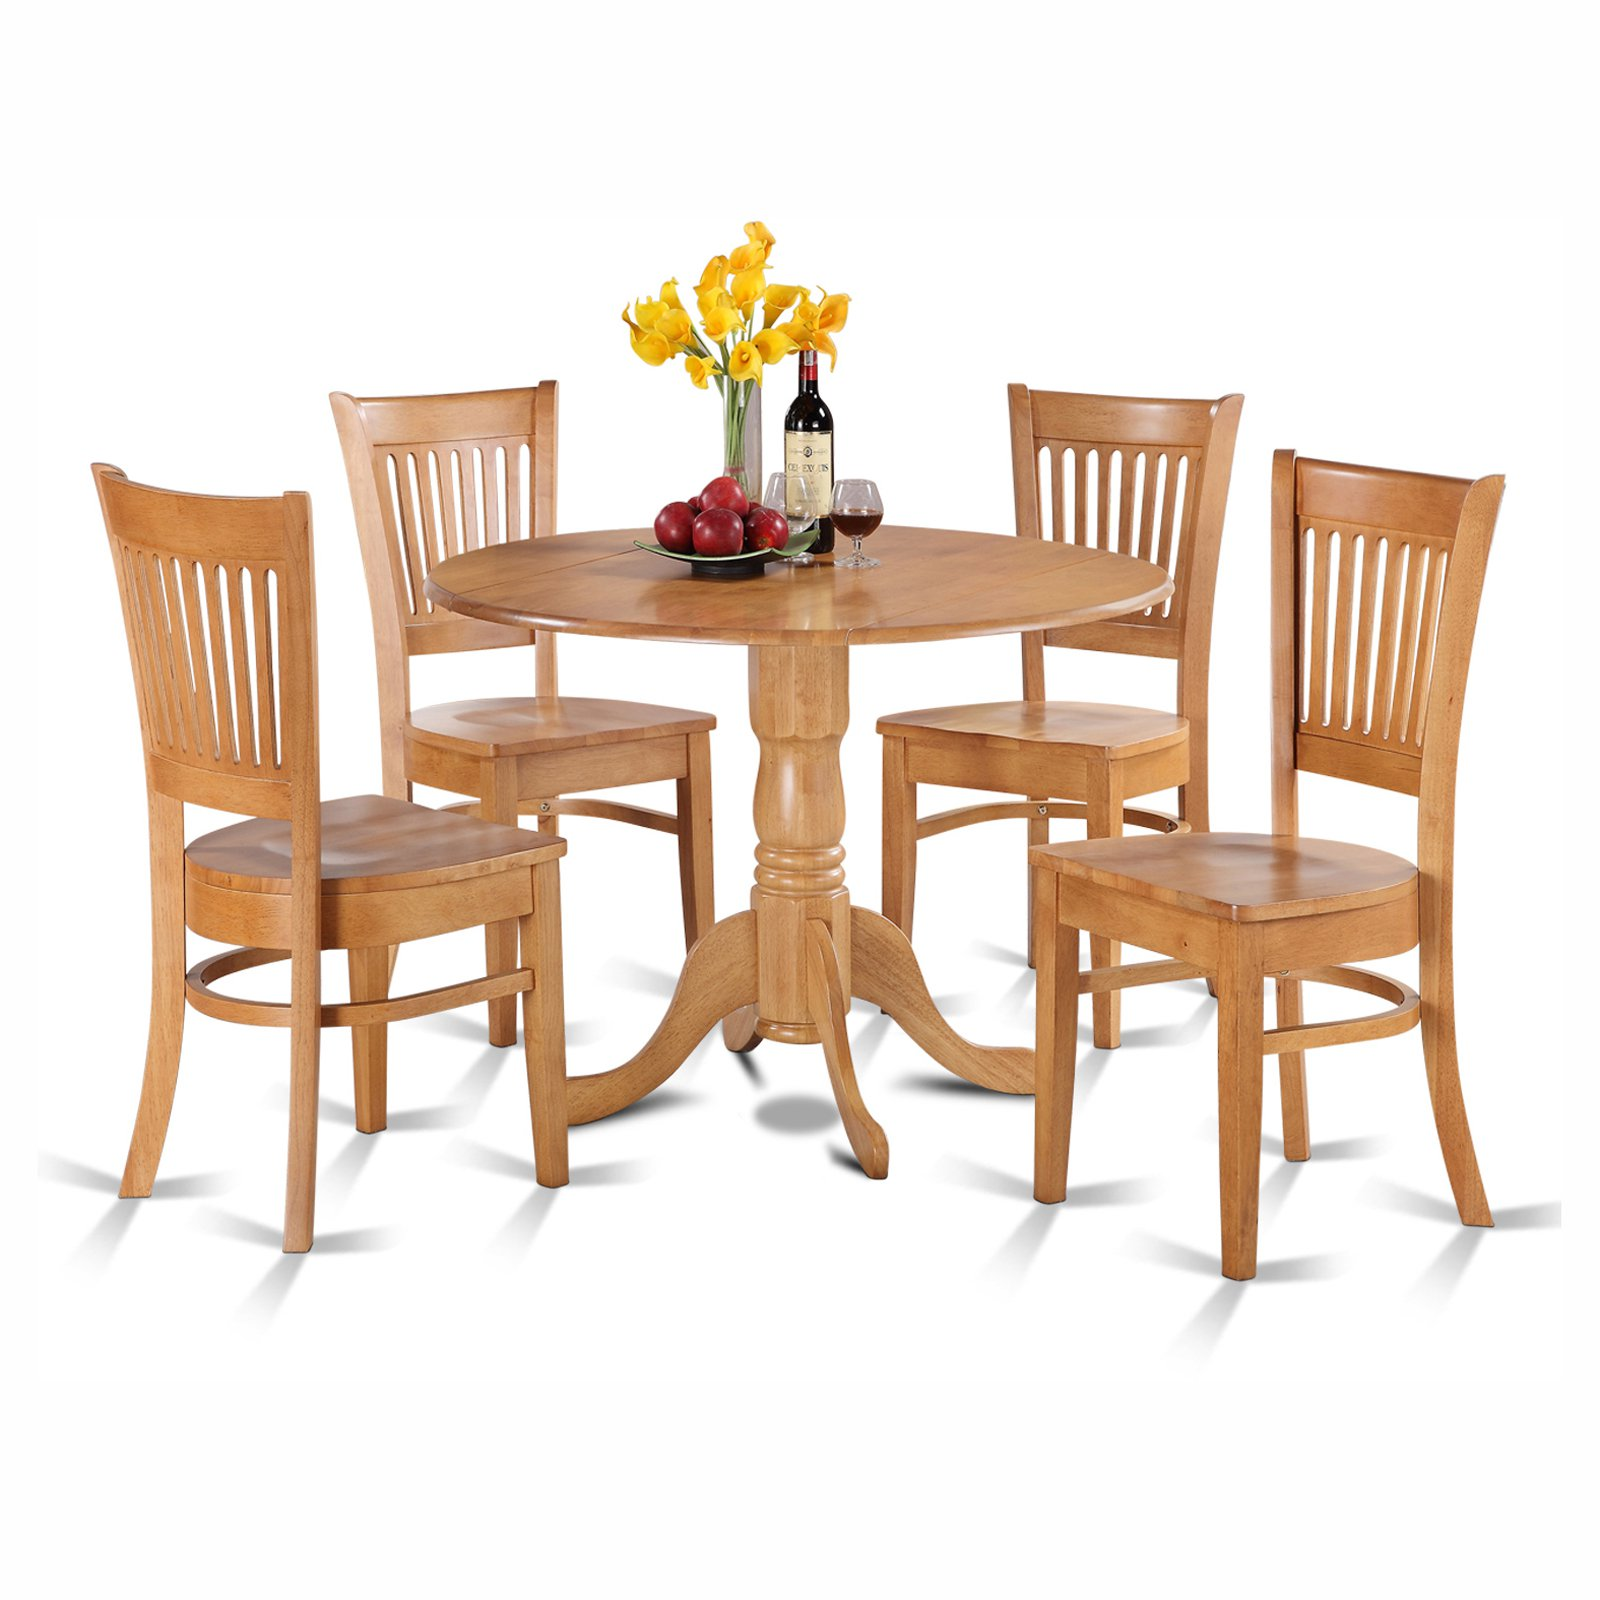 East West Furniture Dublin 5 Piece Drop Leaf Dining Table Set with Vancouver Wooden Seat Chairs